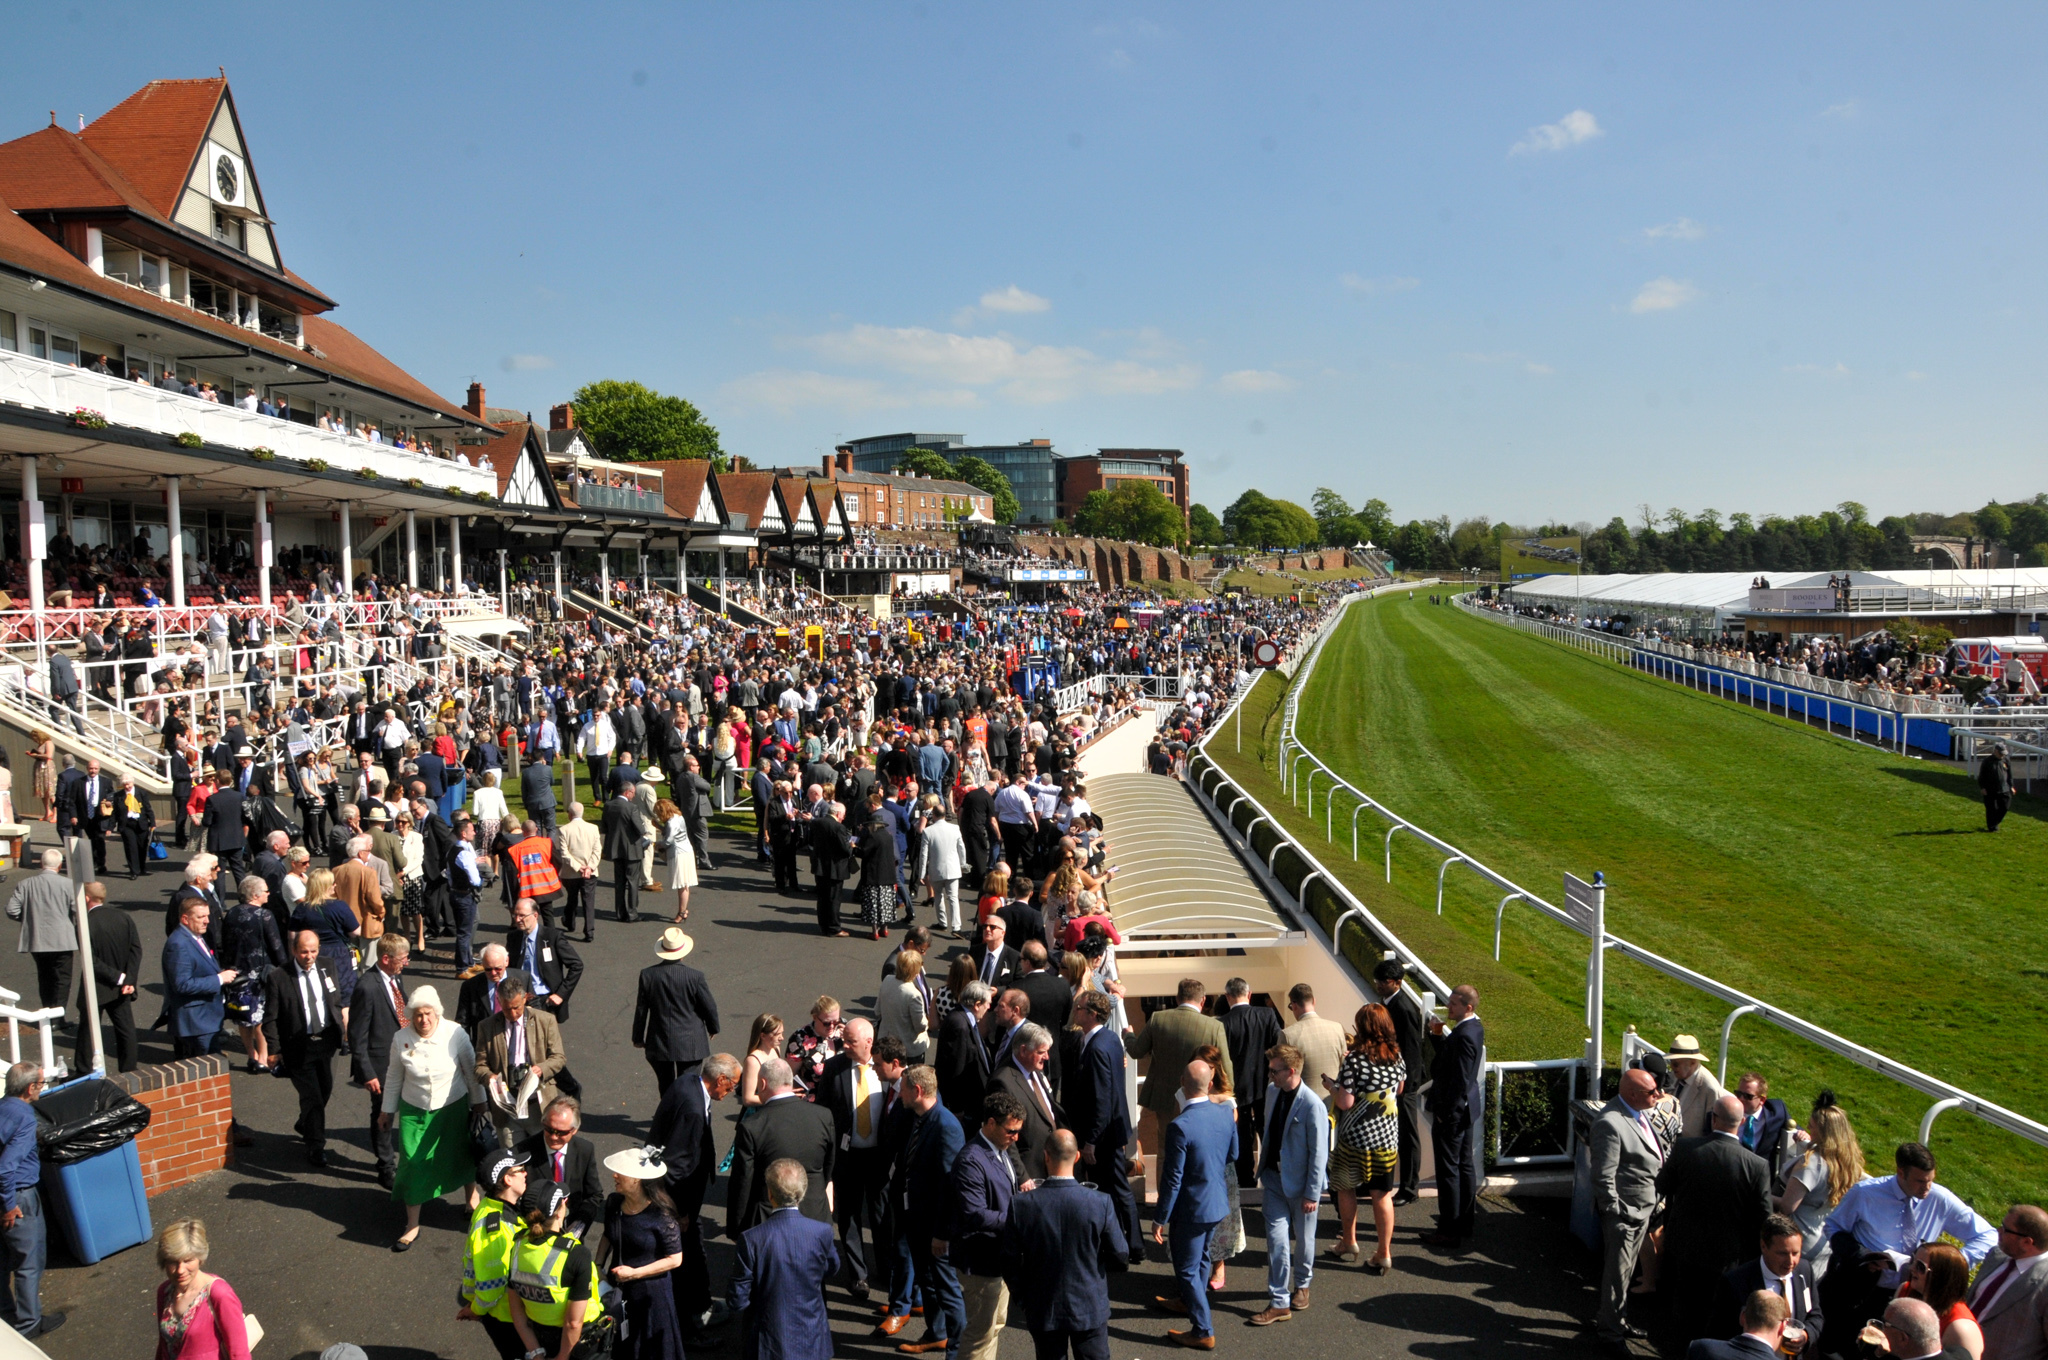 Chester Racecourse officially crowned world's oldest active racecourse